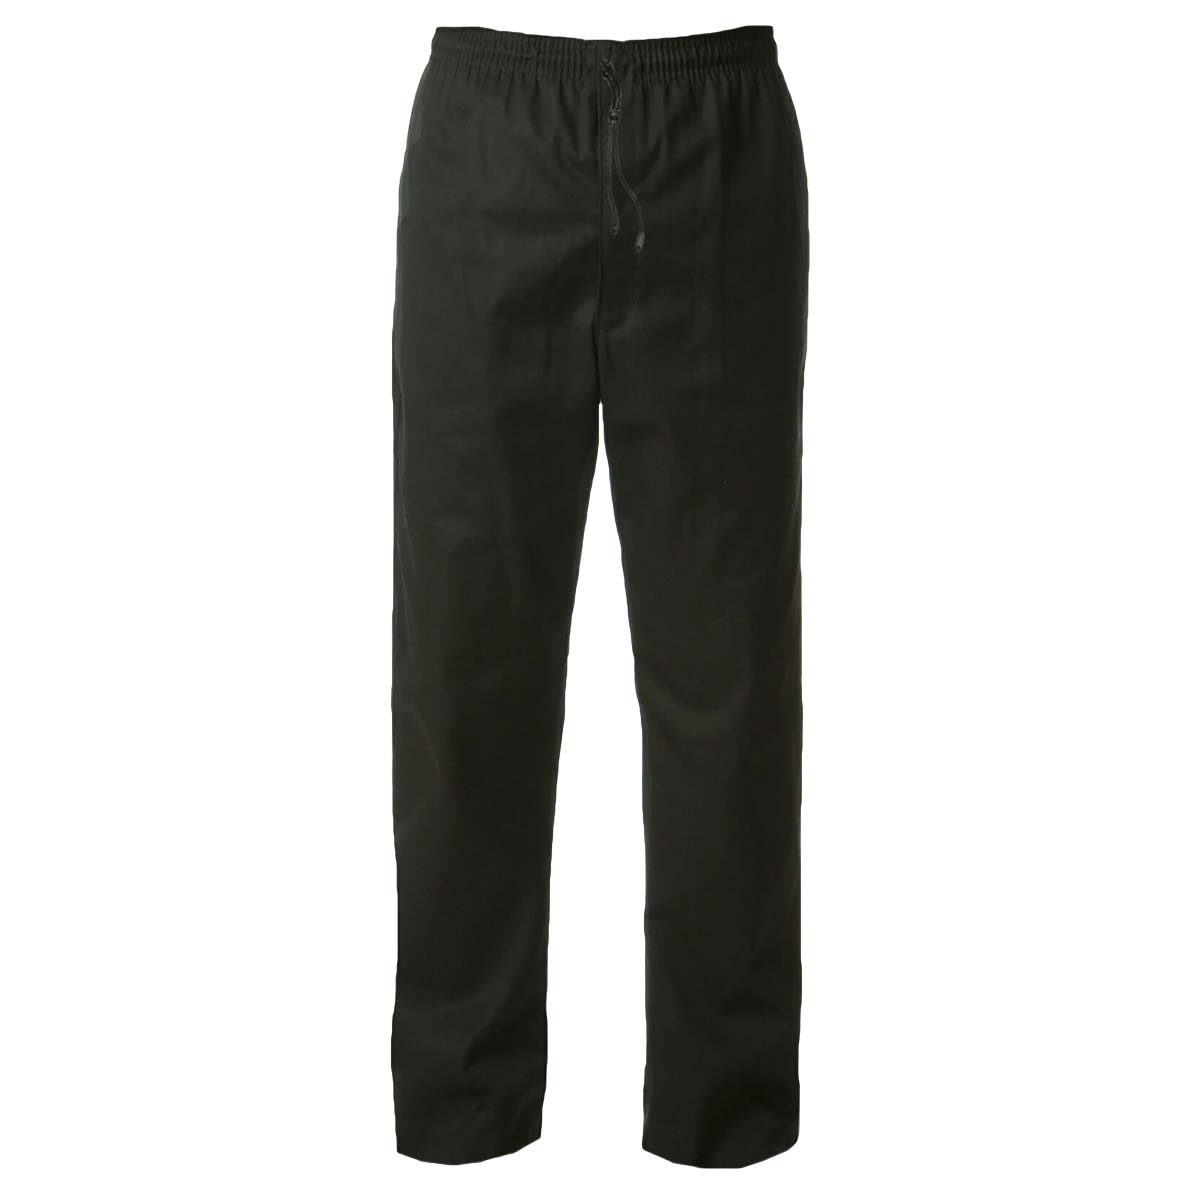 6eae6b1a6626 Chefs Trousers - CKL Clothing Distribution (since 1972)